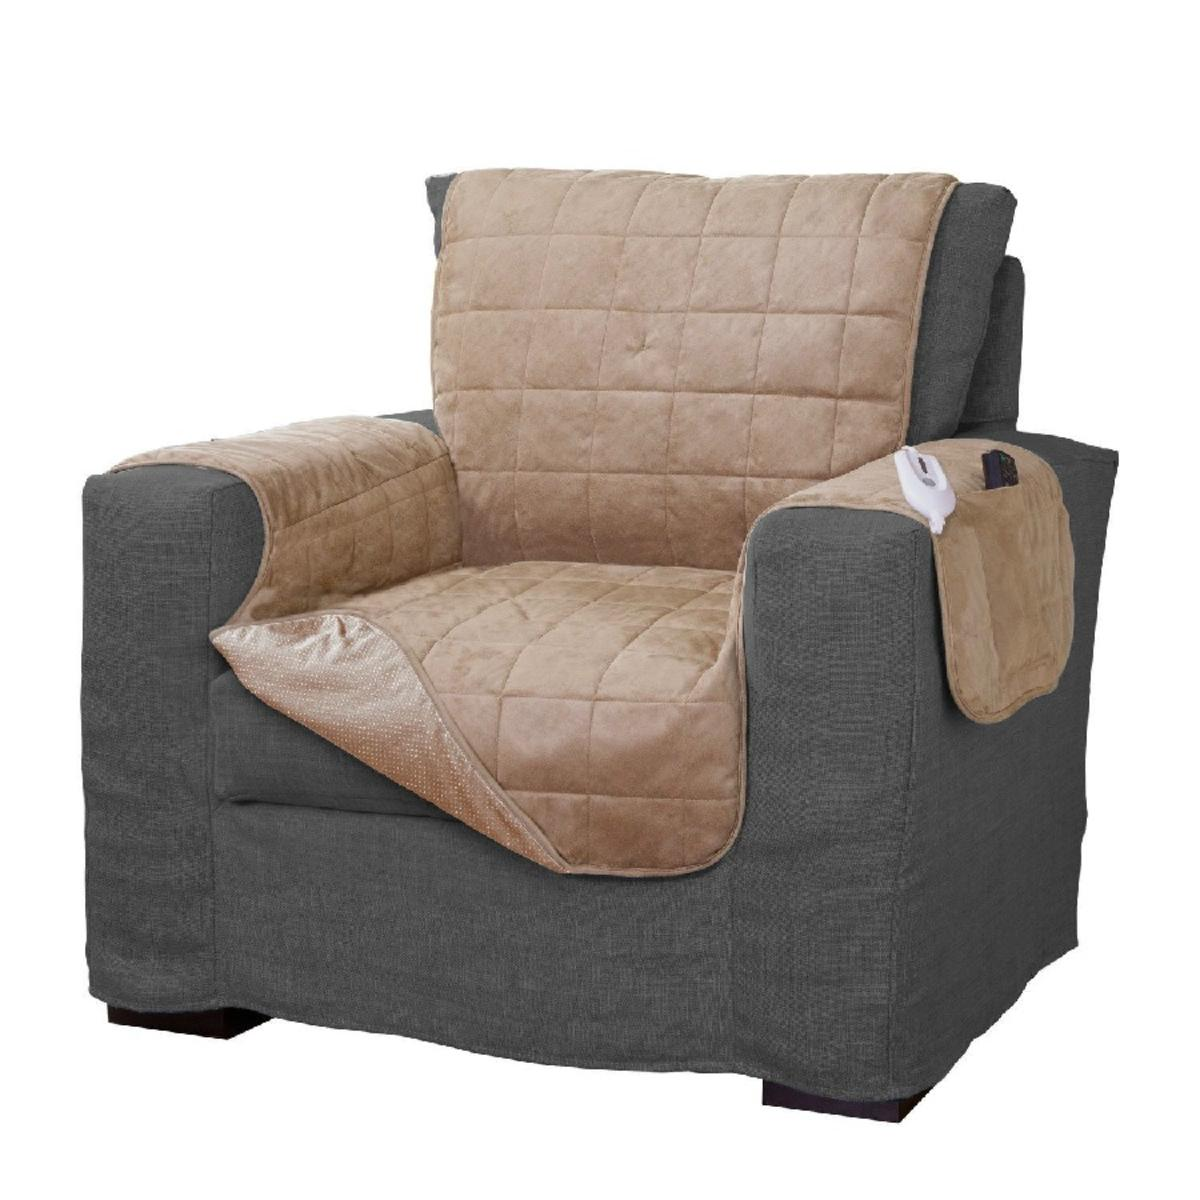 Serta Microsuede Diamond Quilted Electric Warming Furniture Chair